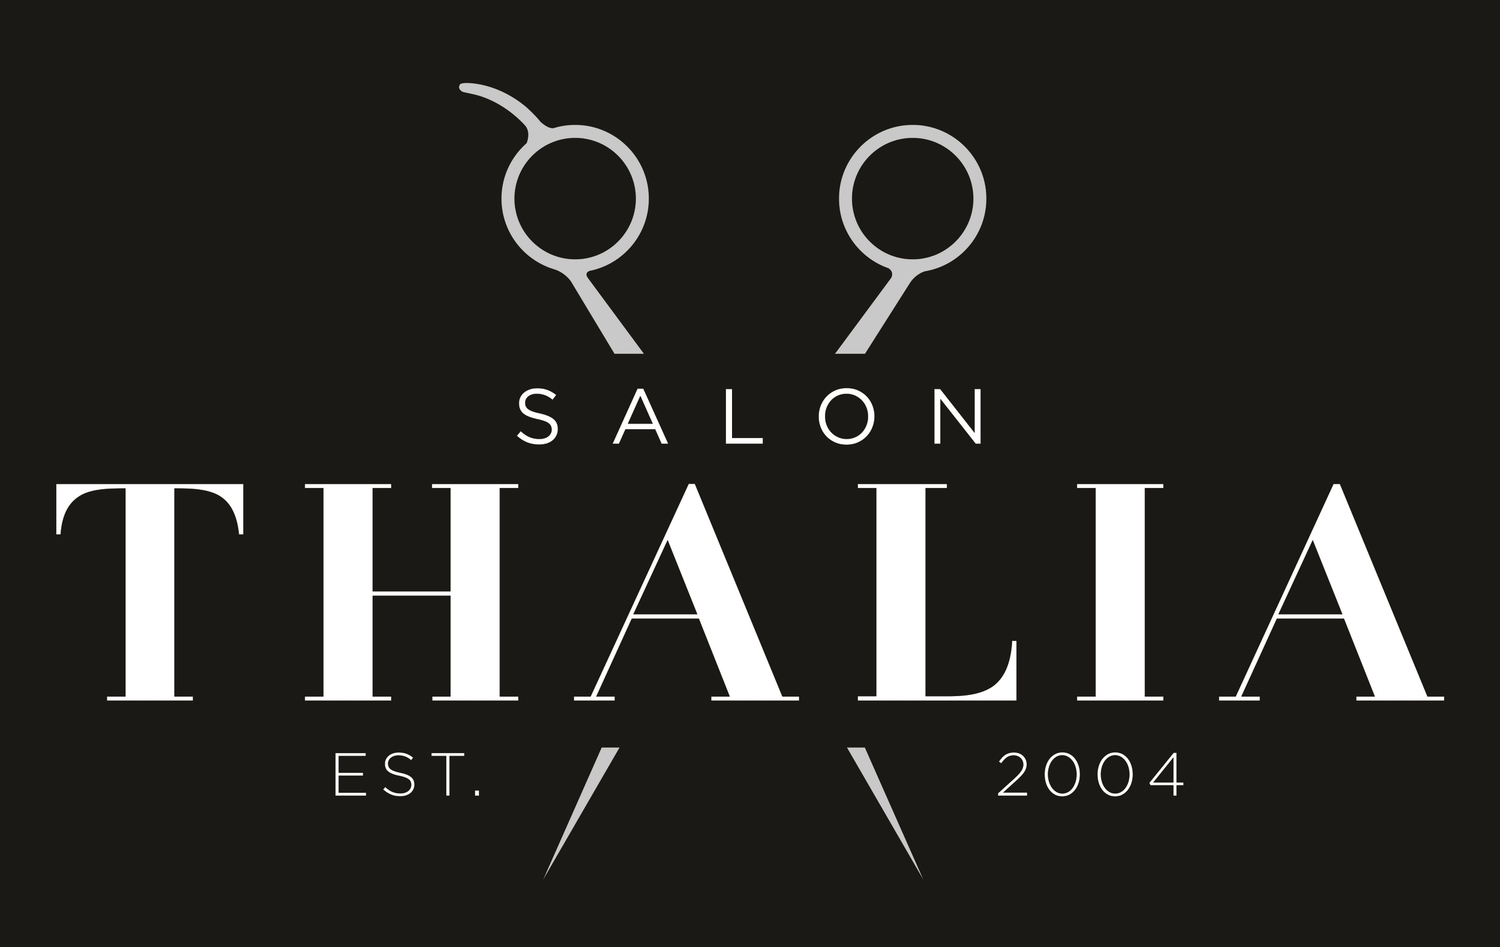 Salon Thalia